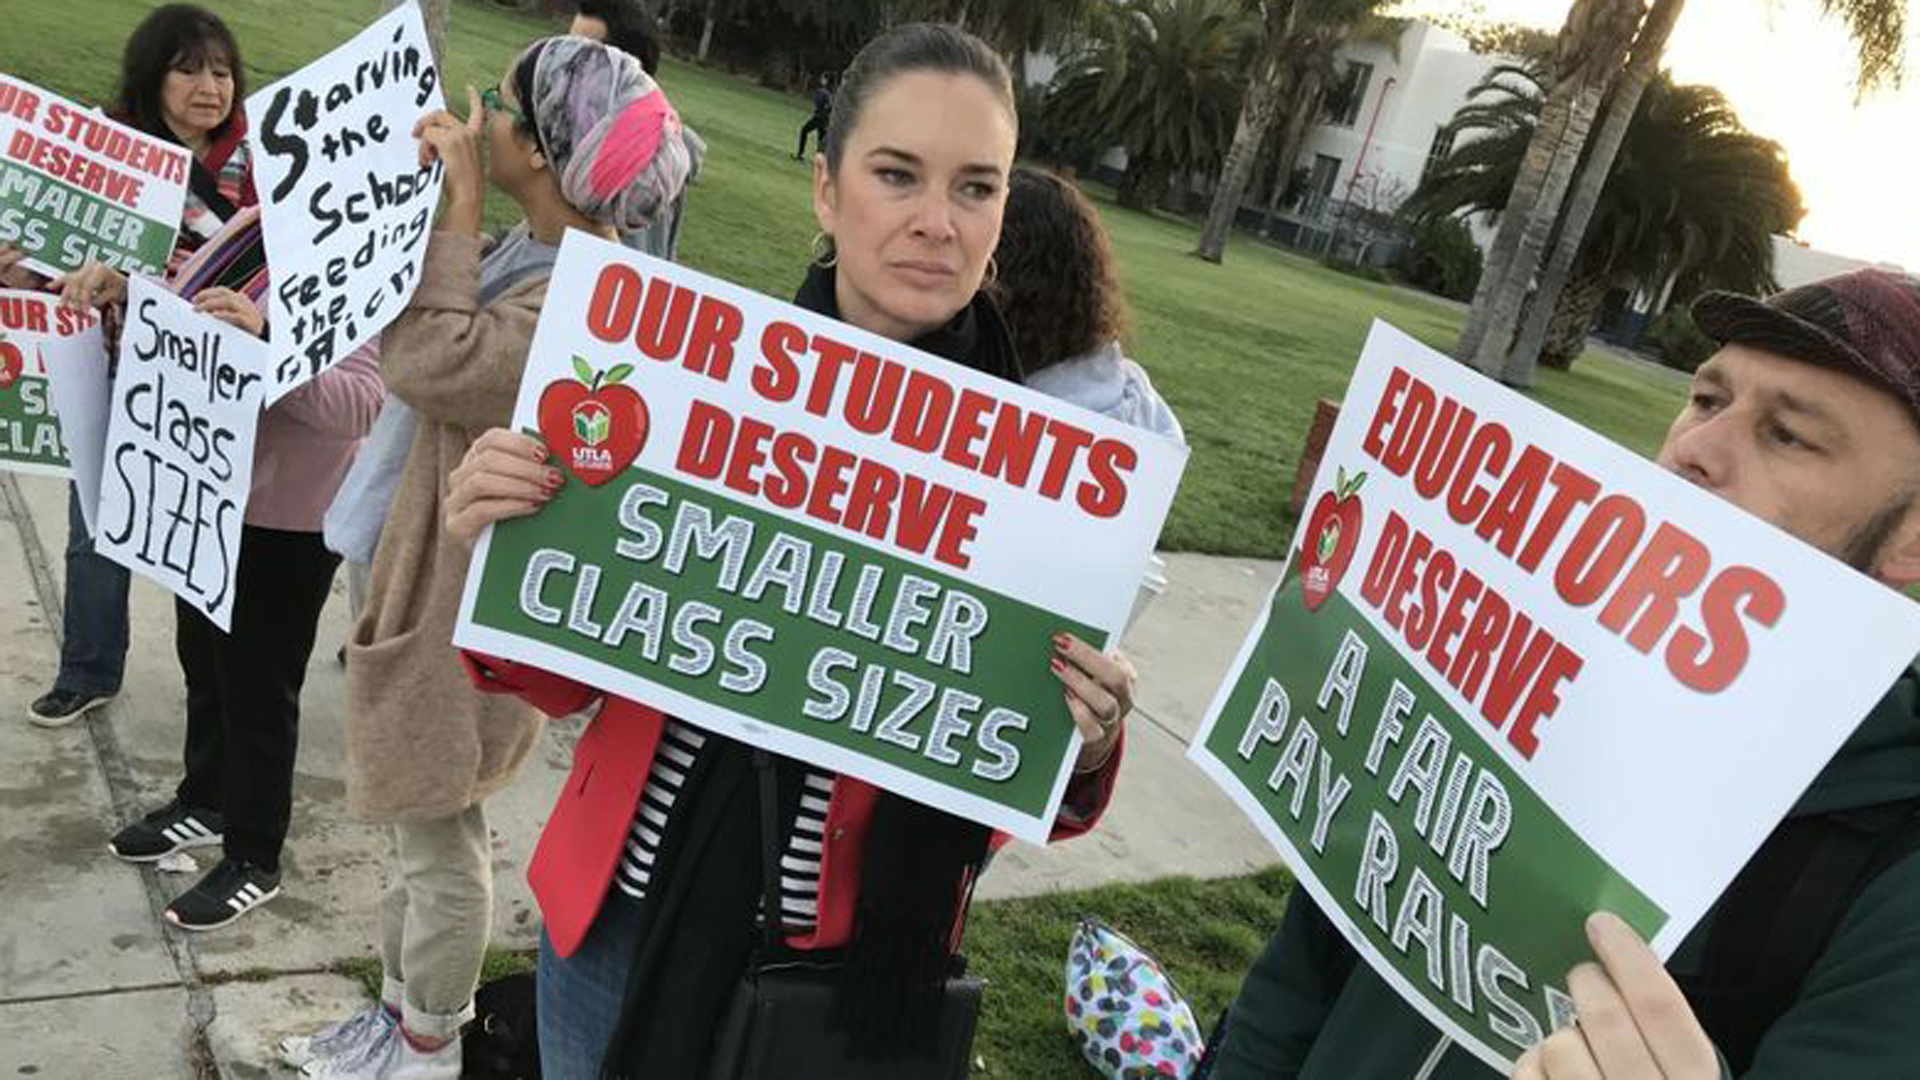 Timothy Hayes right, and Anastasia Foster, center, joined supporters of LAUSD teachers in front of Venice High School for a rally to show their solidarity with the educators and UTLA's call for lower class sizes Thursday morning. (Credit: Brian van der Brug / Los Angeles Times)